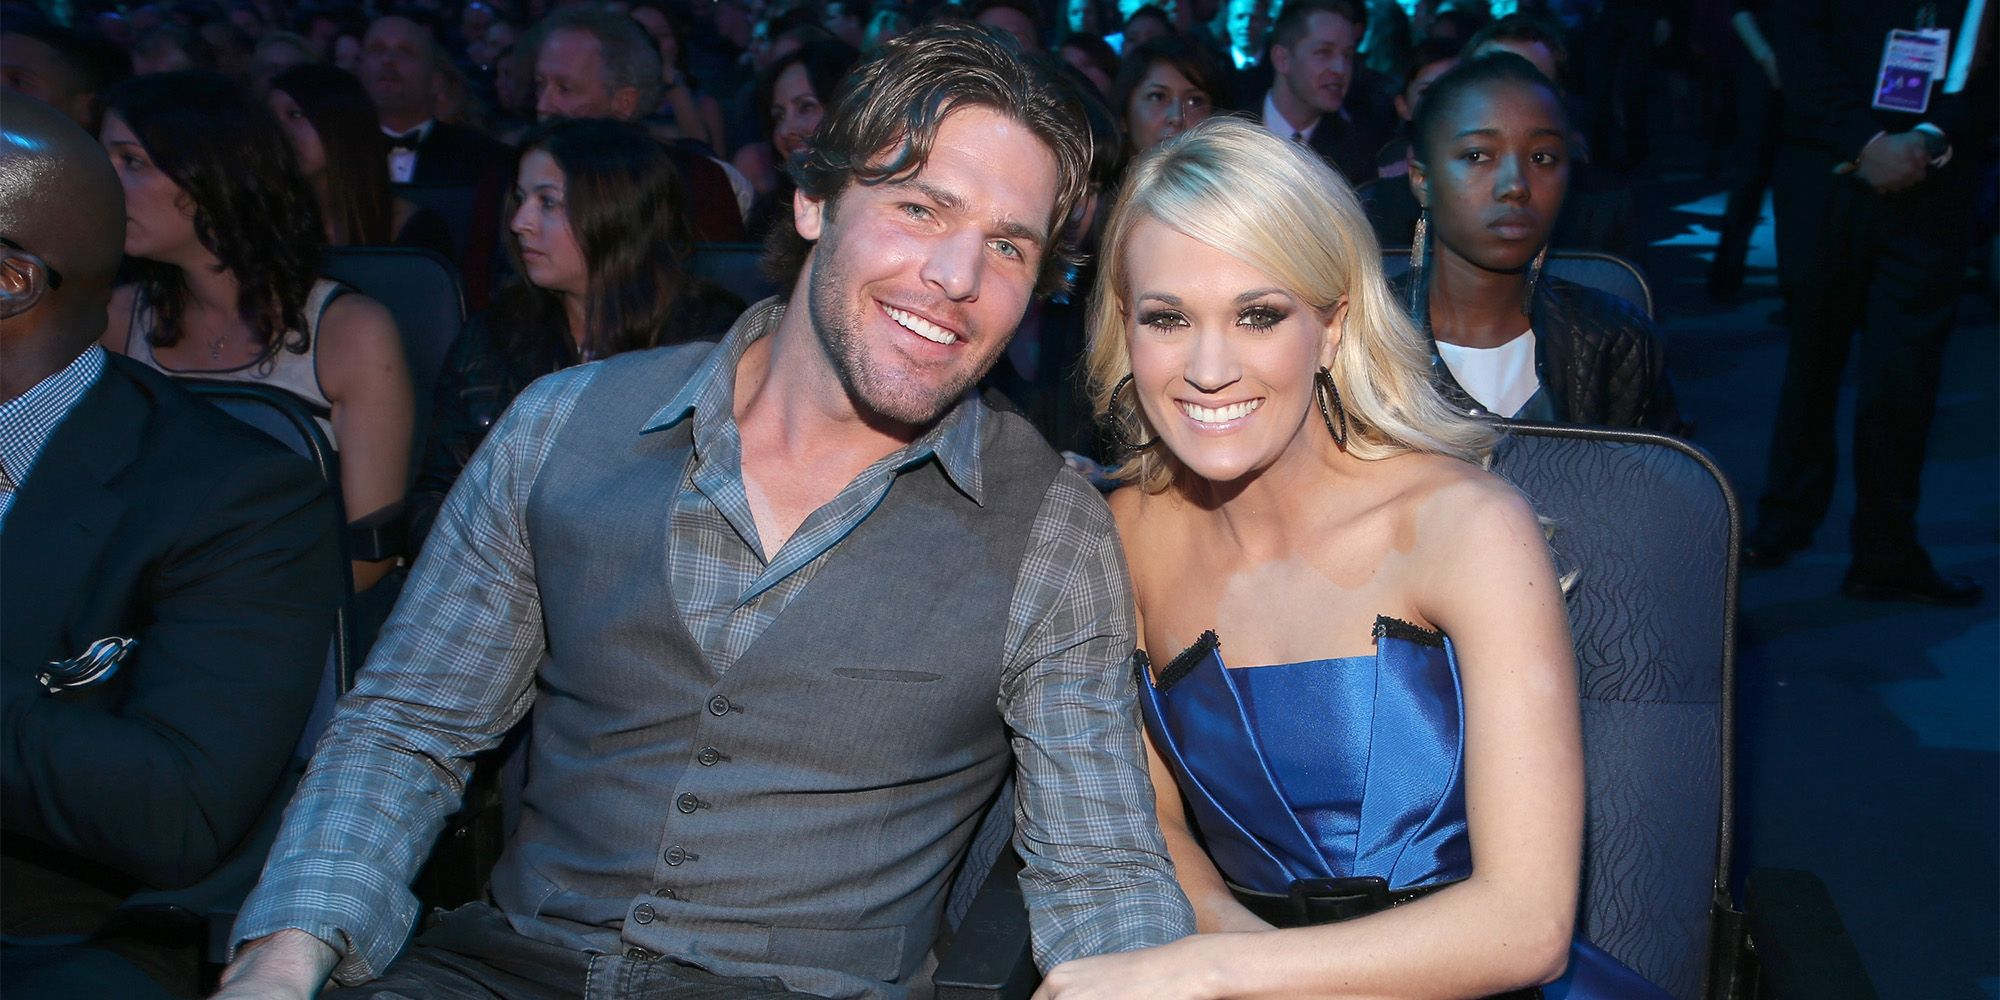 Carrie Underwood Releases Family Video - 'What I Never Knew I Always